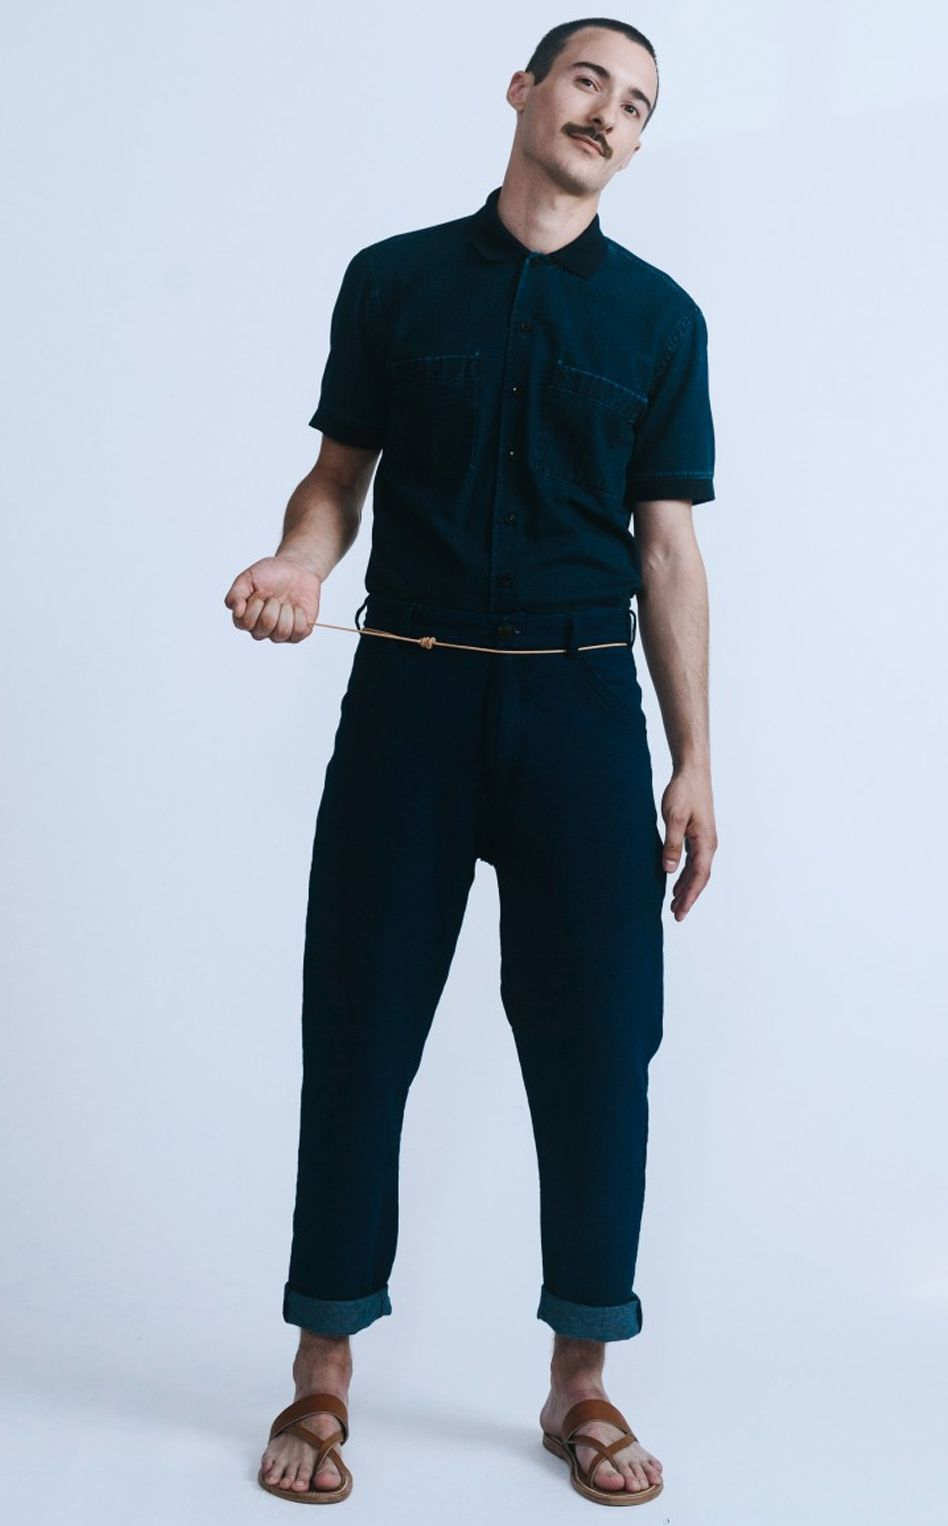 care 101 - Homecore's Jabali denim